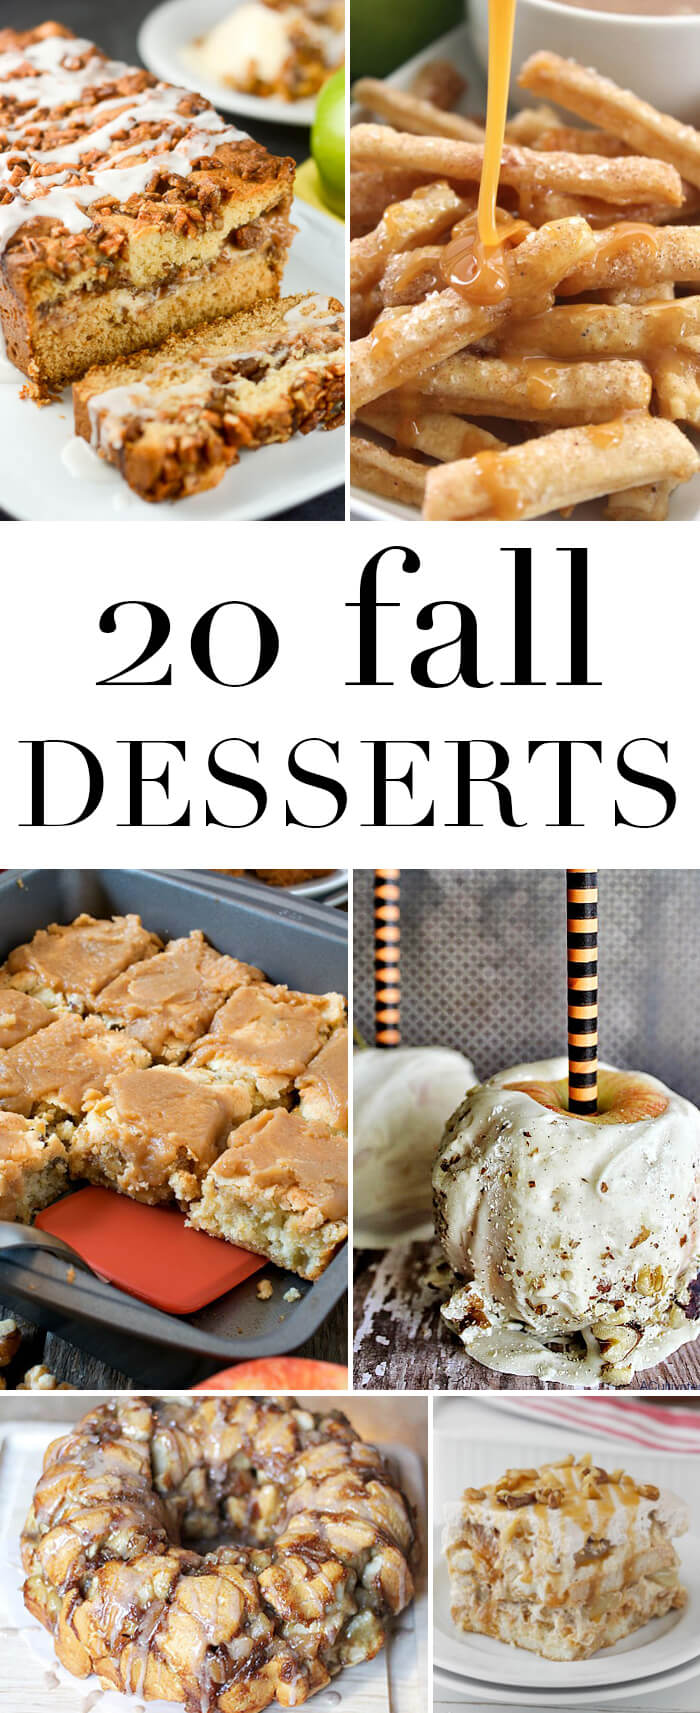 20 Fall Dessert Recipe Ideas